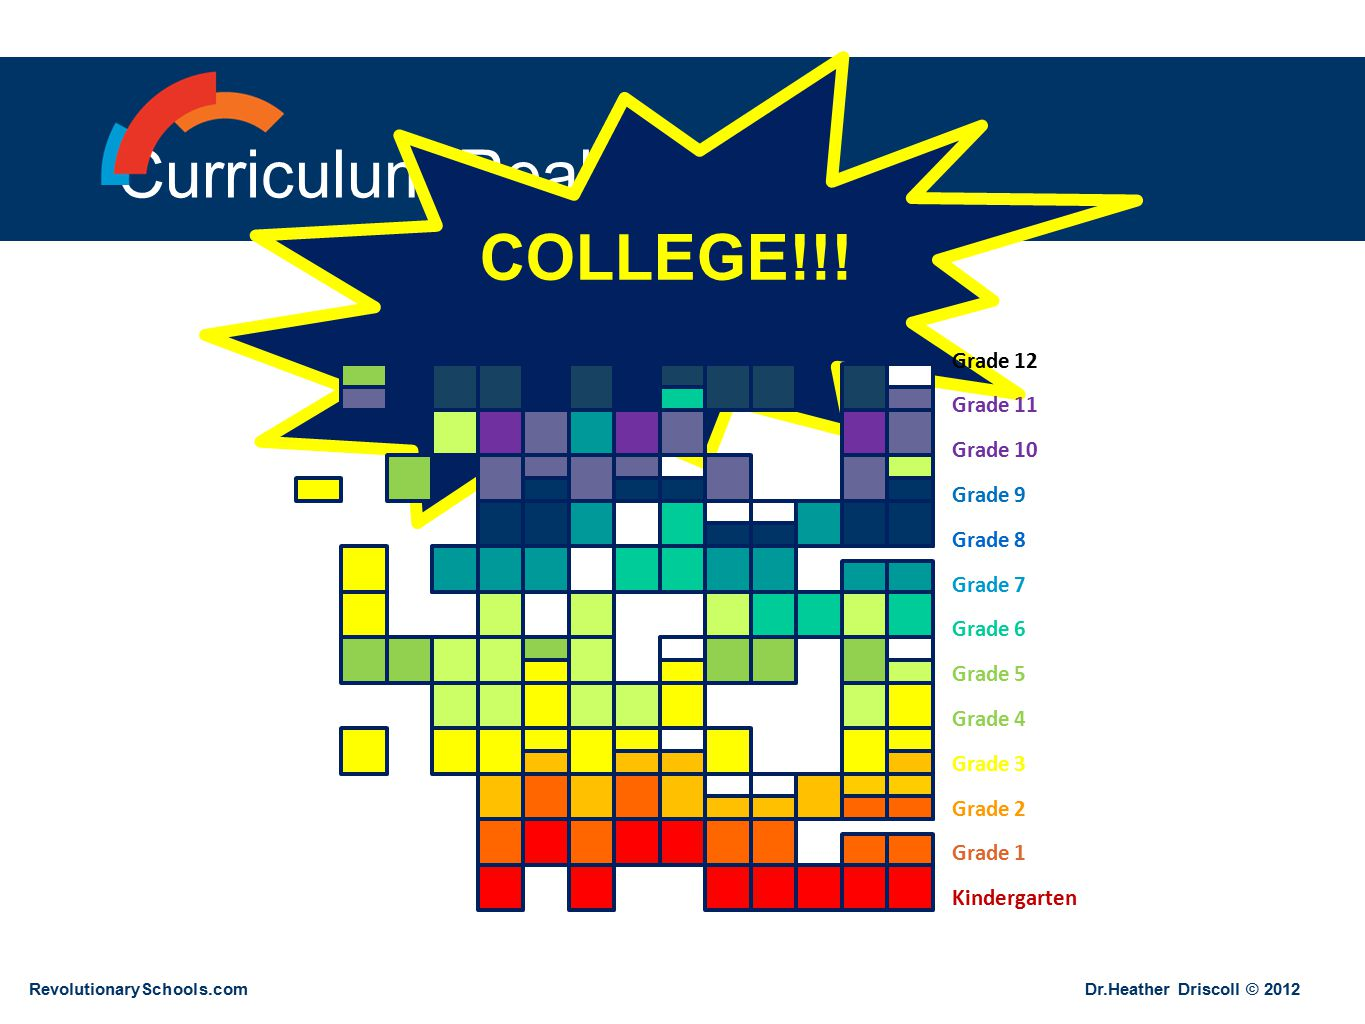 Curriculum Realized COLLEGE!!.